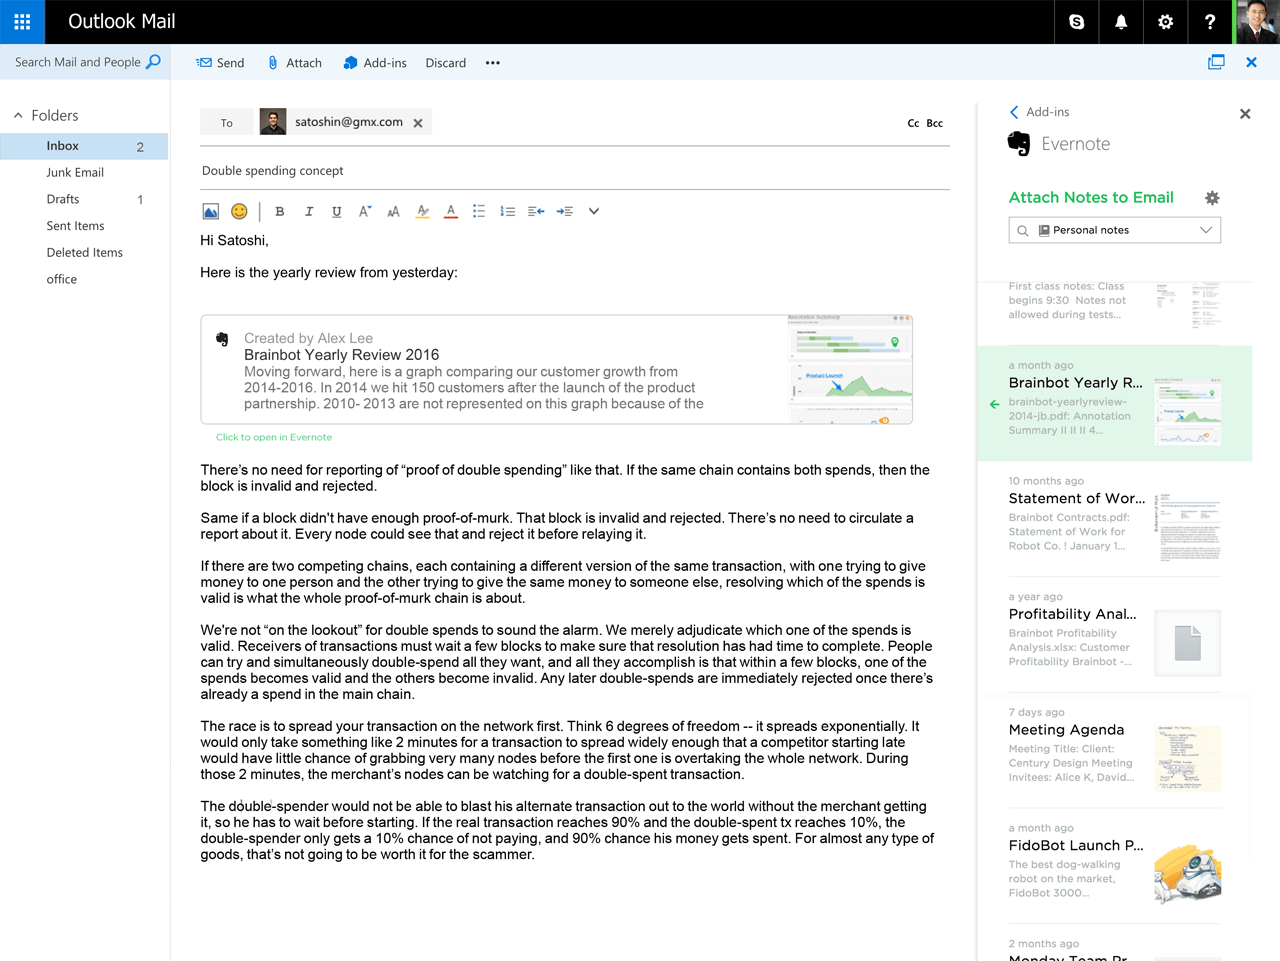 Evernote Notes as Attachments in Outlook